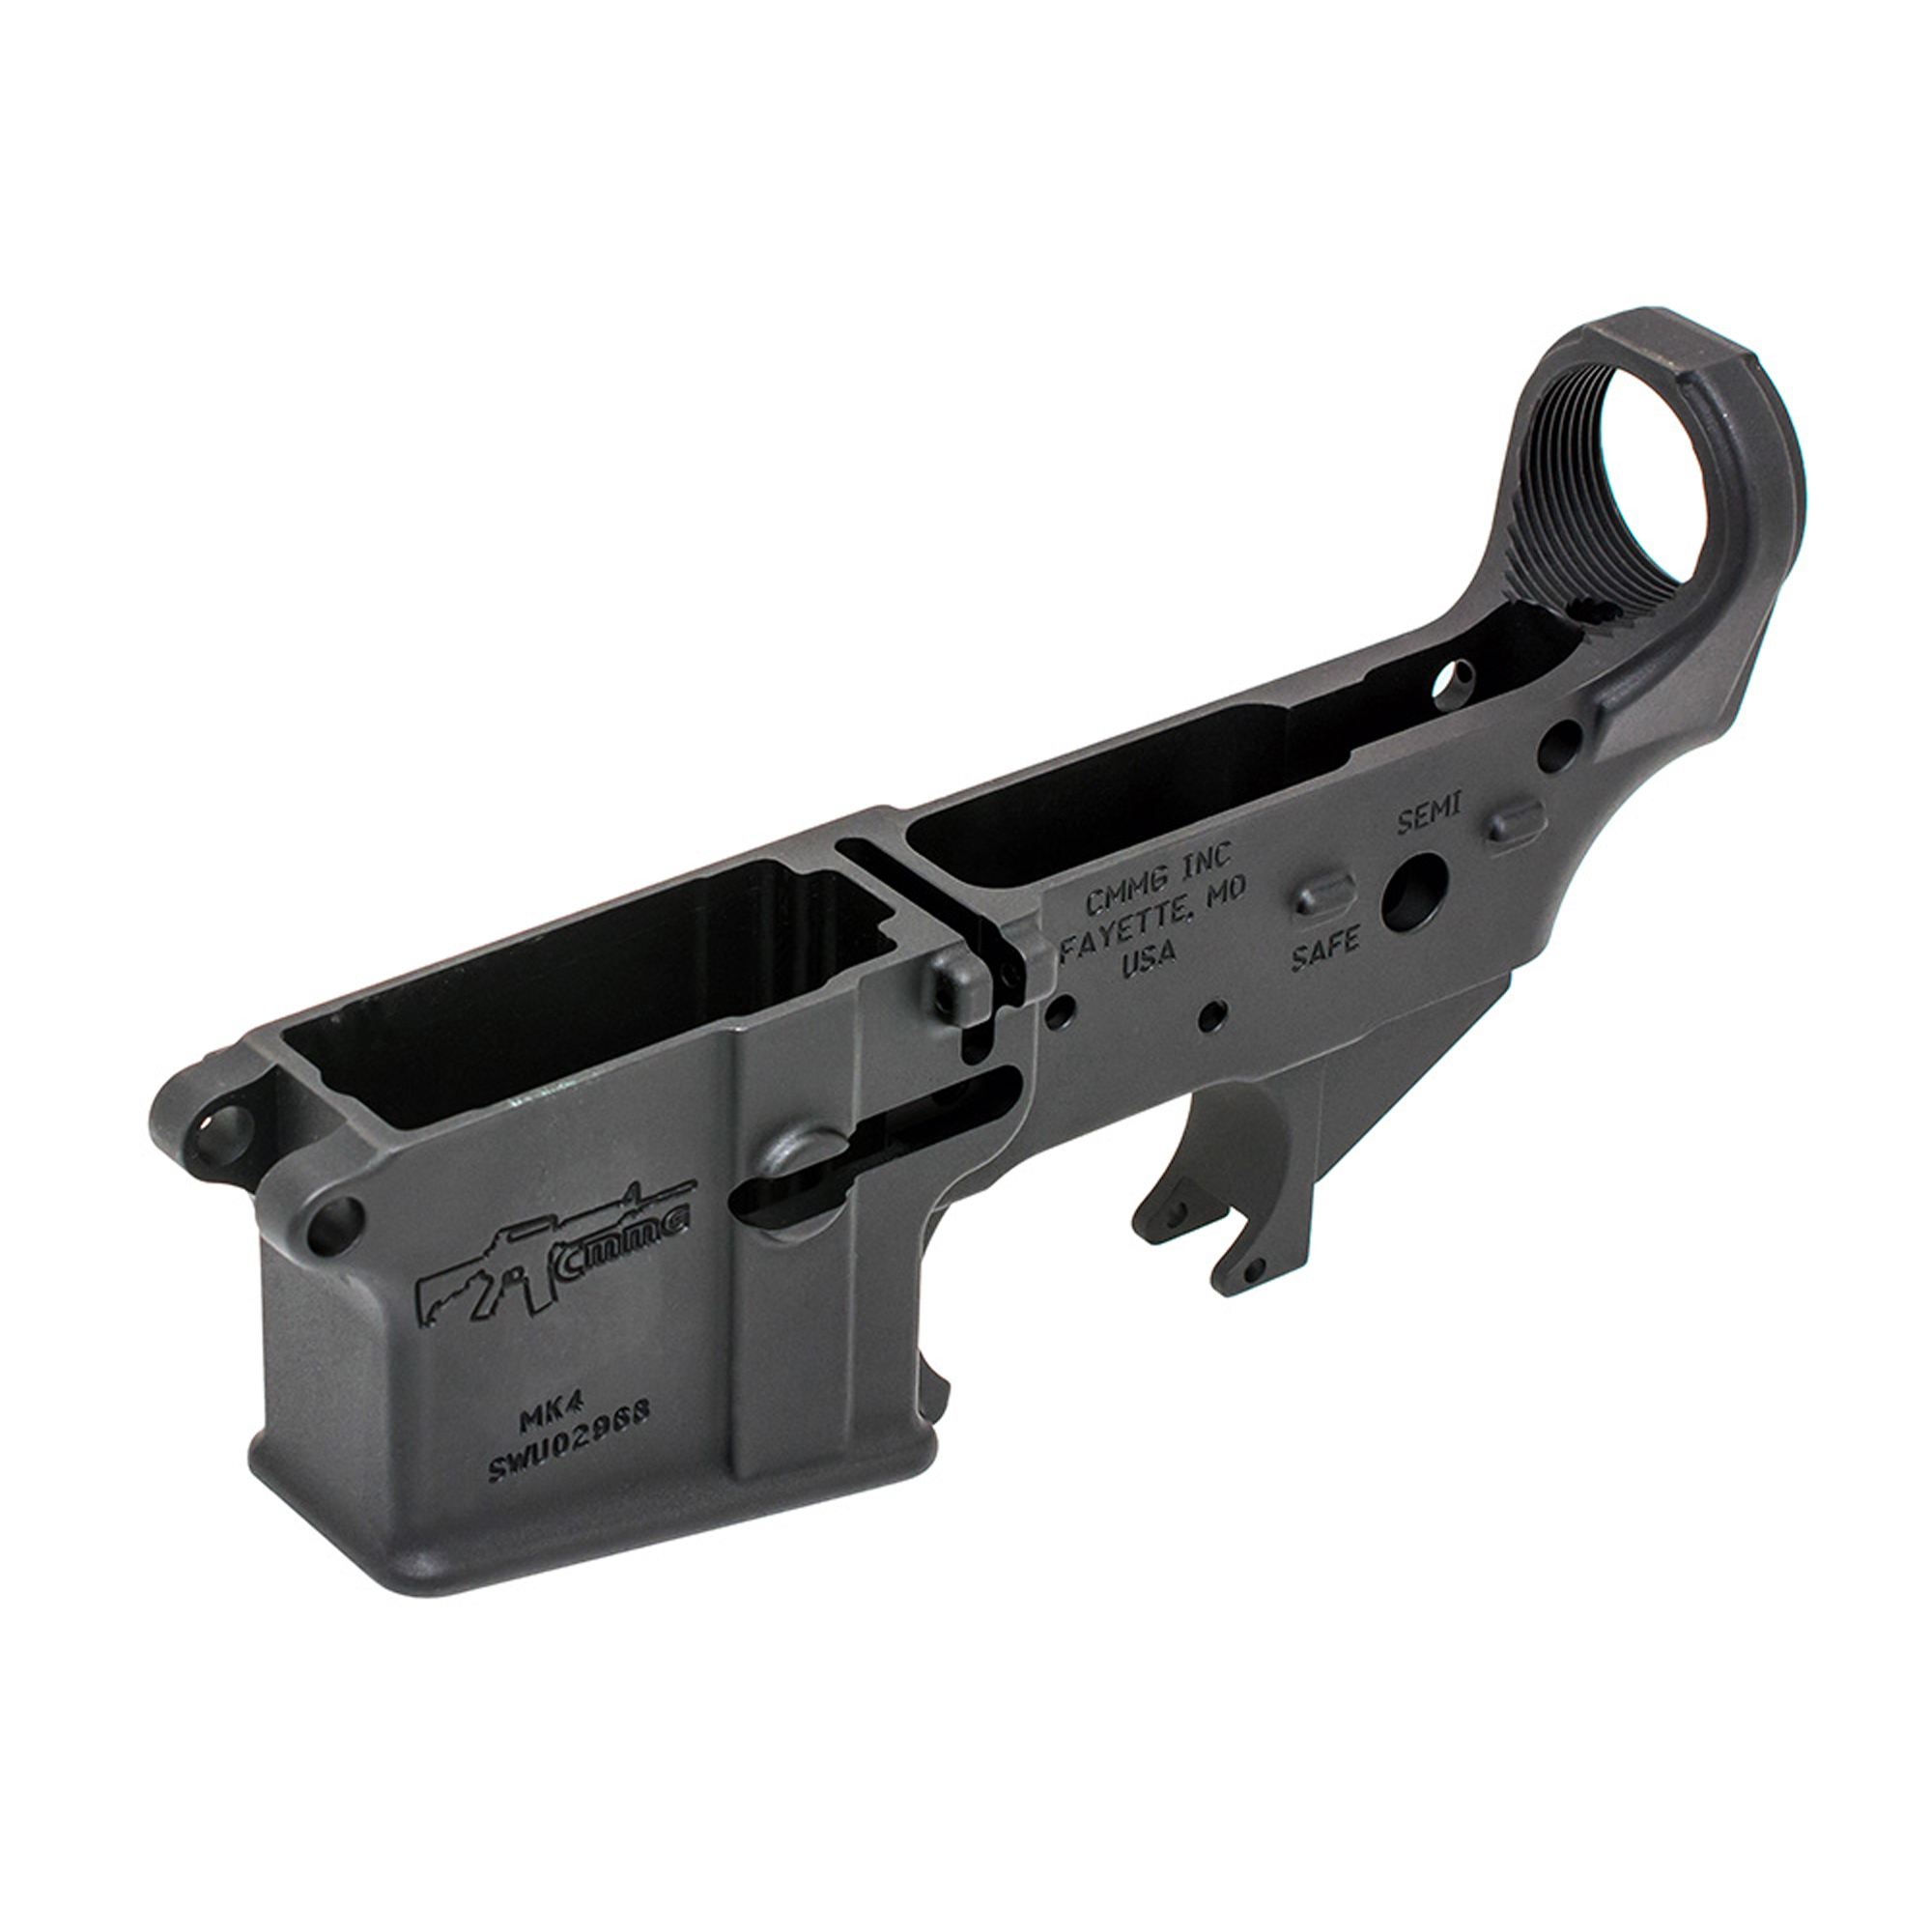 Combine this lower with a lower parts kit and buttstock kit to build your favorite lower group.